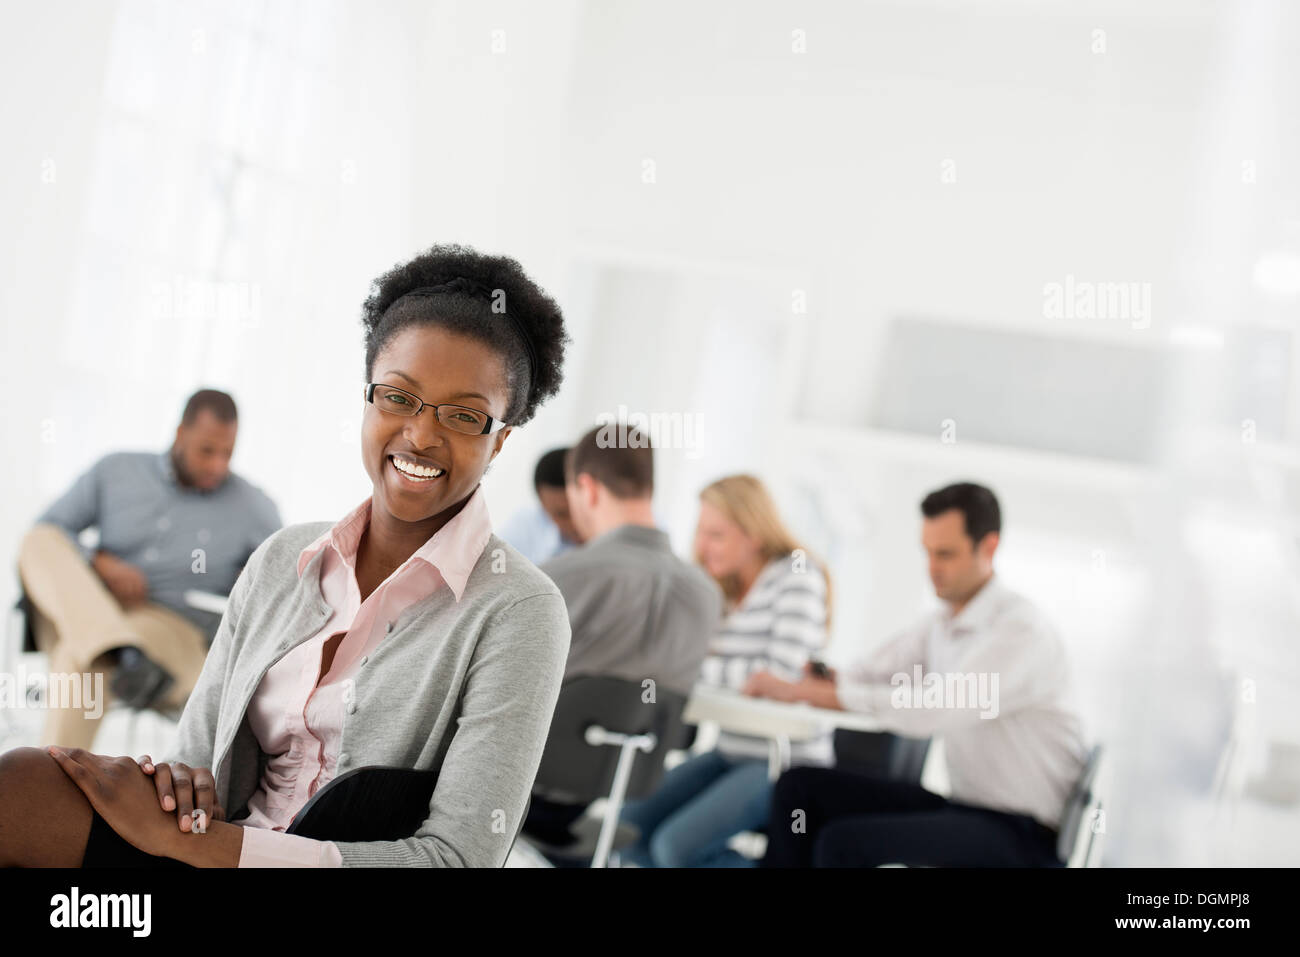 Office interior. A group of people meeting. One person looking over her shoulder and away from the group. - Stock Image